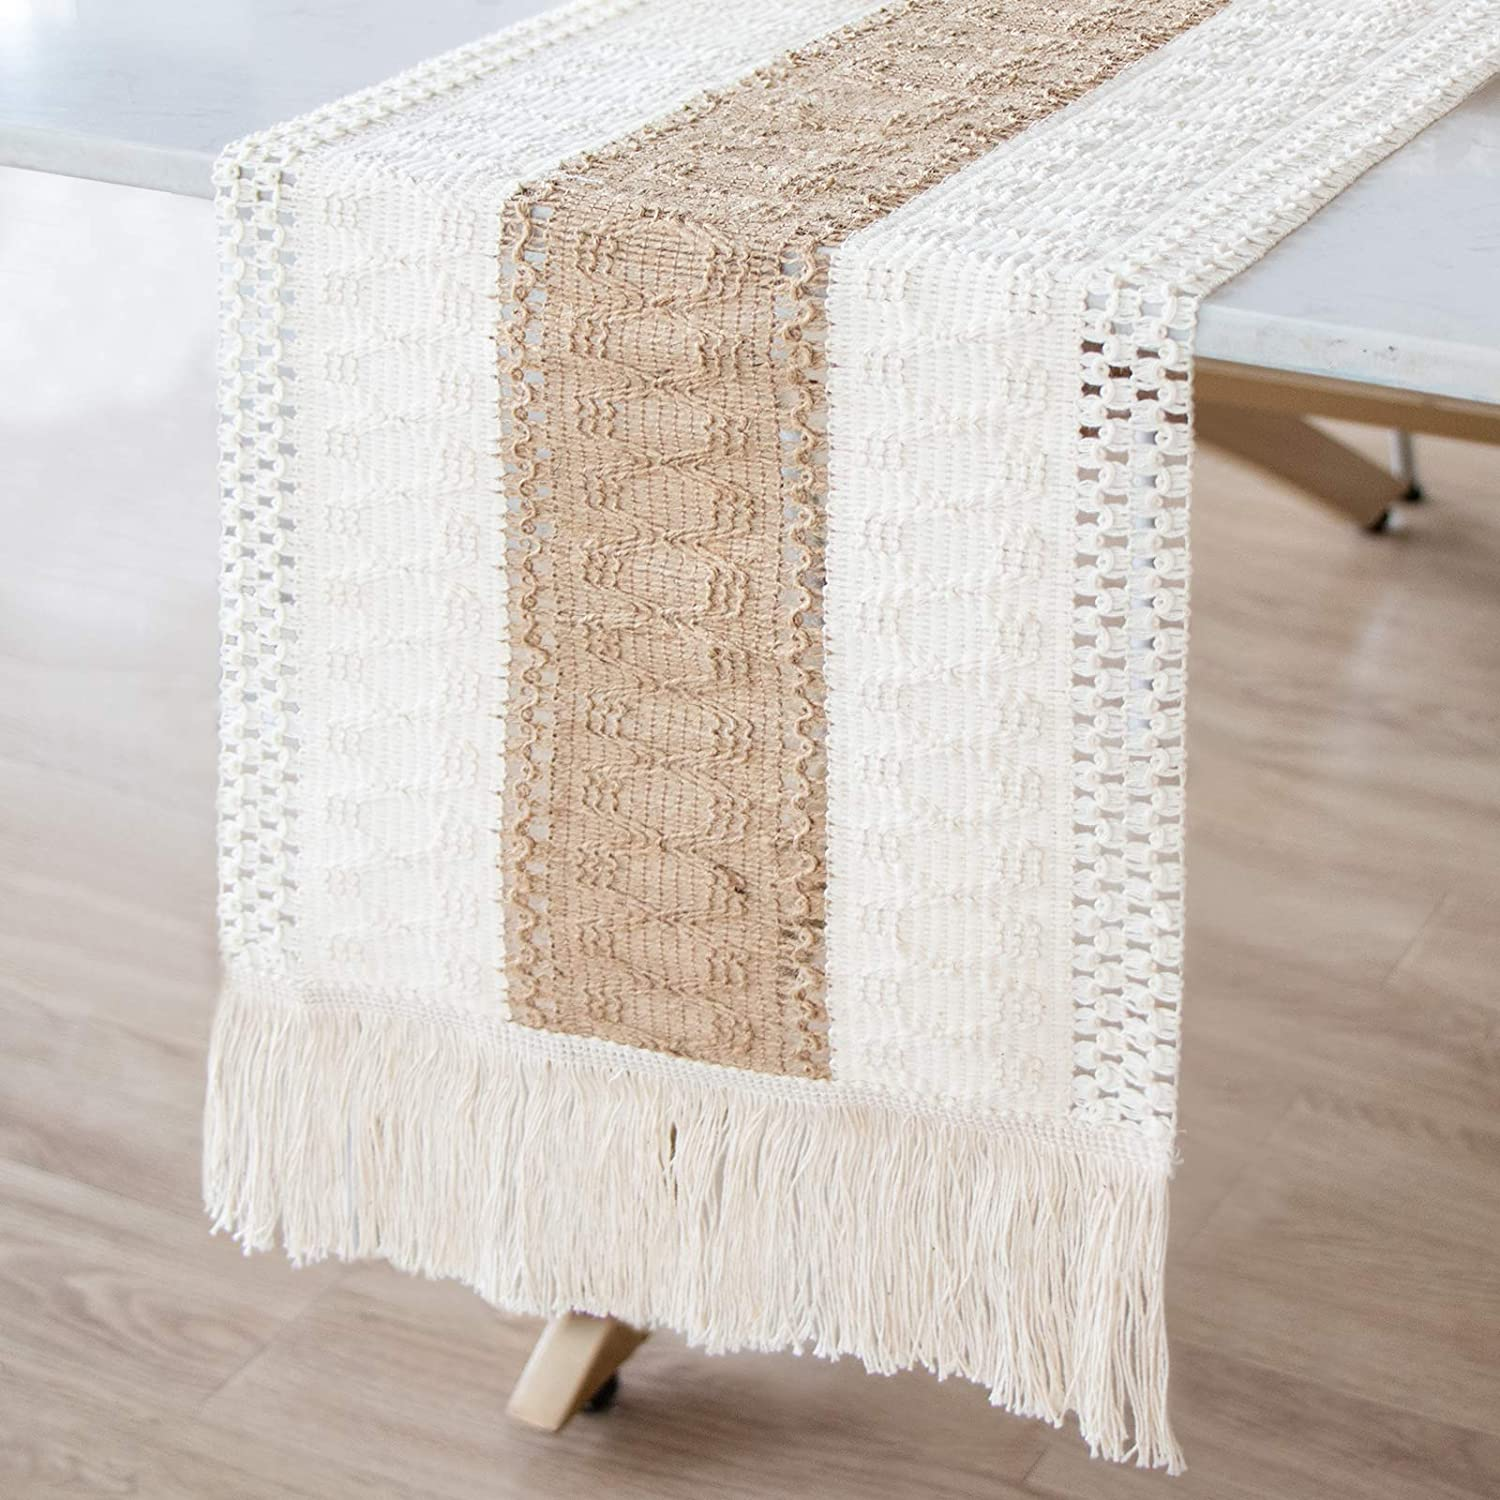 AerWo Macrame Table Runner Splicing Cotton and Burlap Table Runner, Woven Table Runner Farmhouse Style with Tassels Boho Table Runner for Wedding Bridal Shower Home Dining Table Decor, 12 x 108 Inch